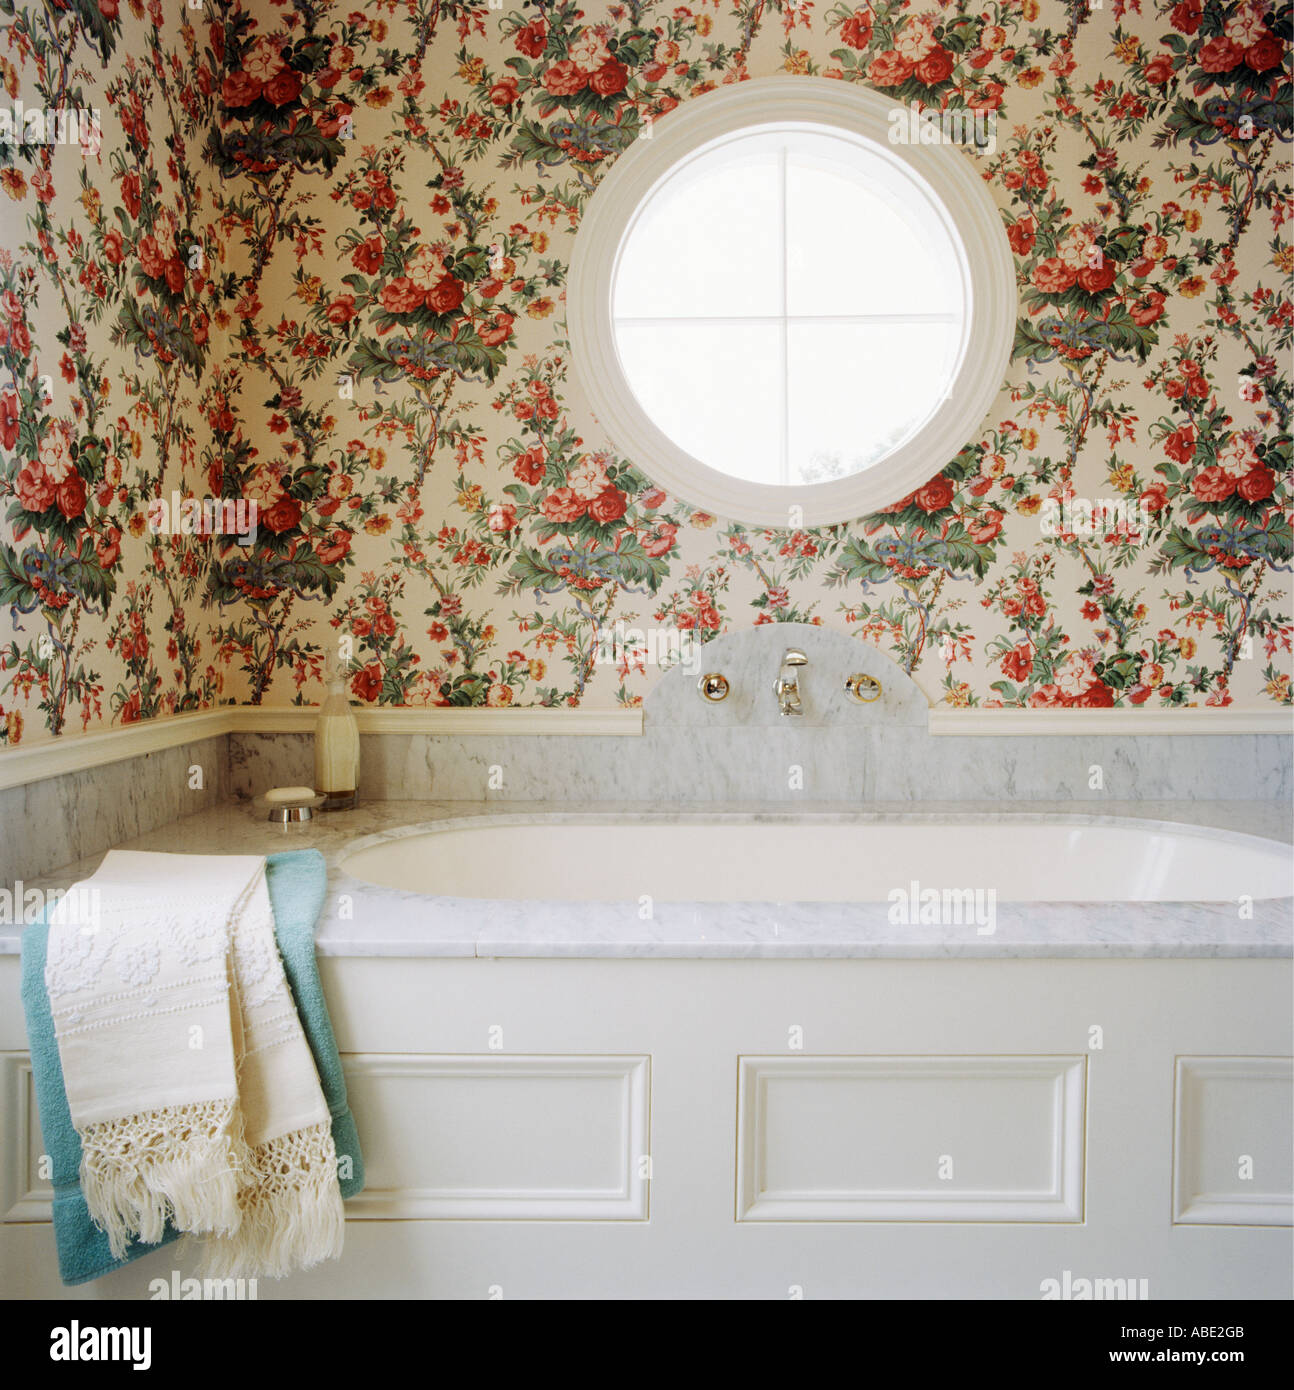 Bathroom with Wallpaper - Stock Image